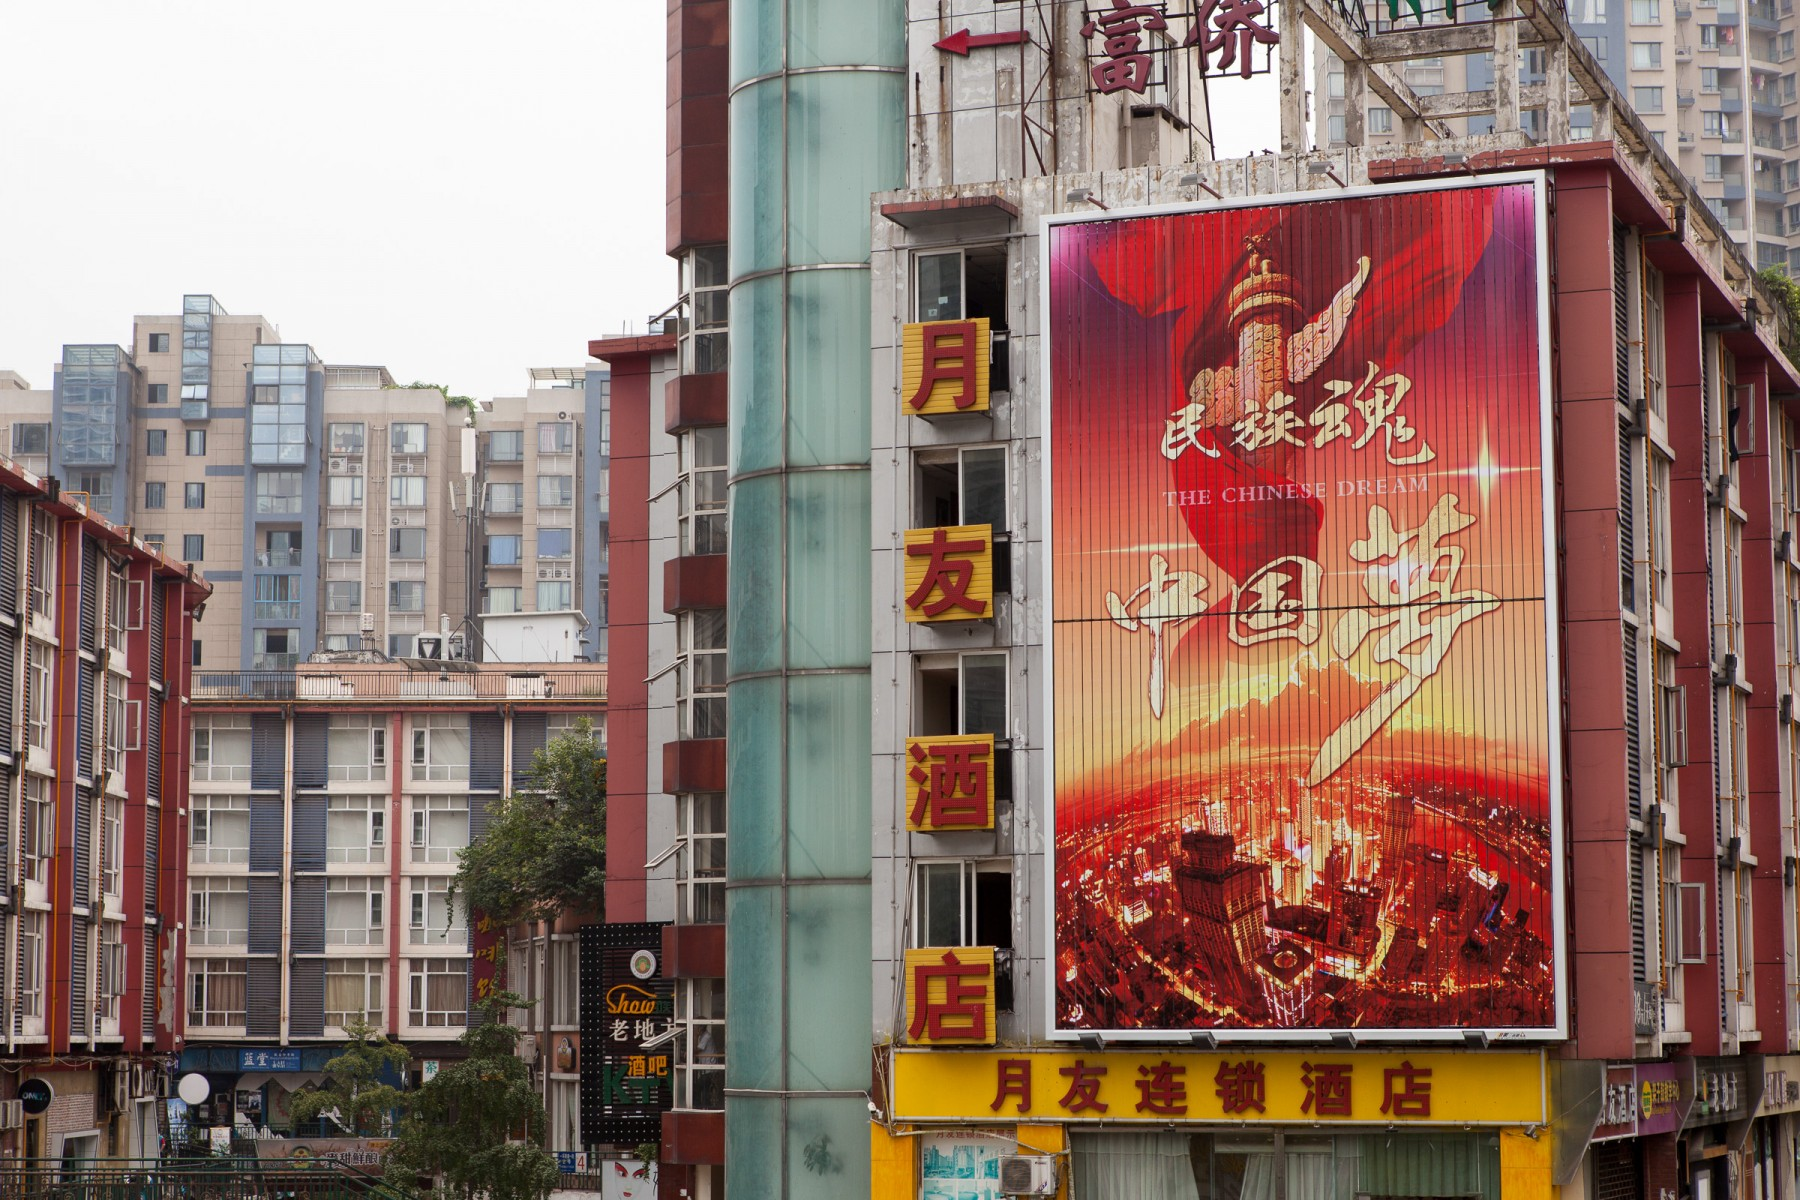 The Chinese Dream slogan on a billboard in Chengdu, China.